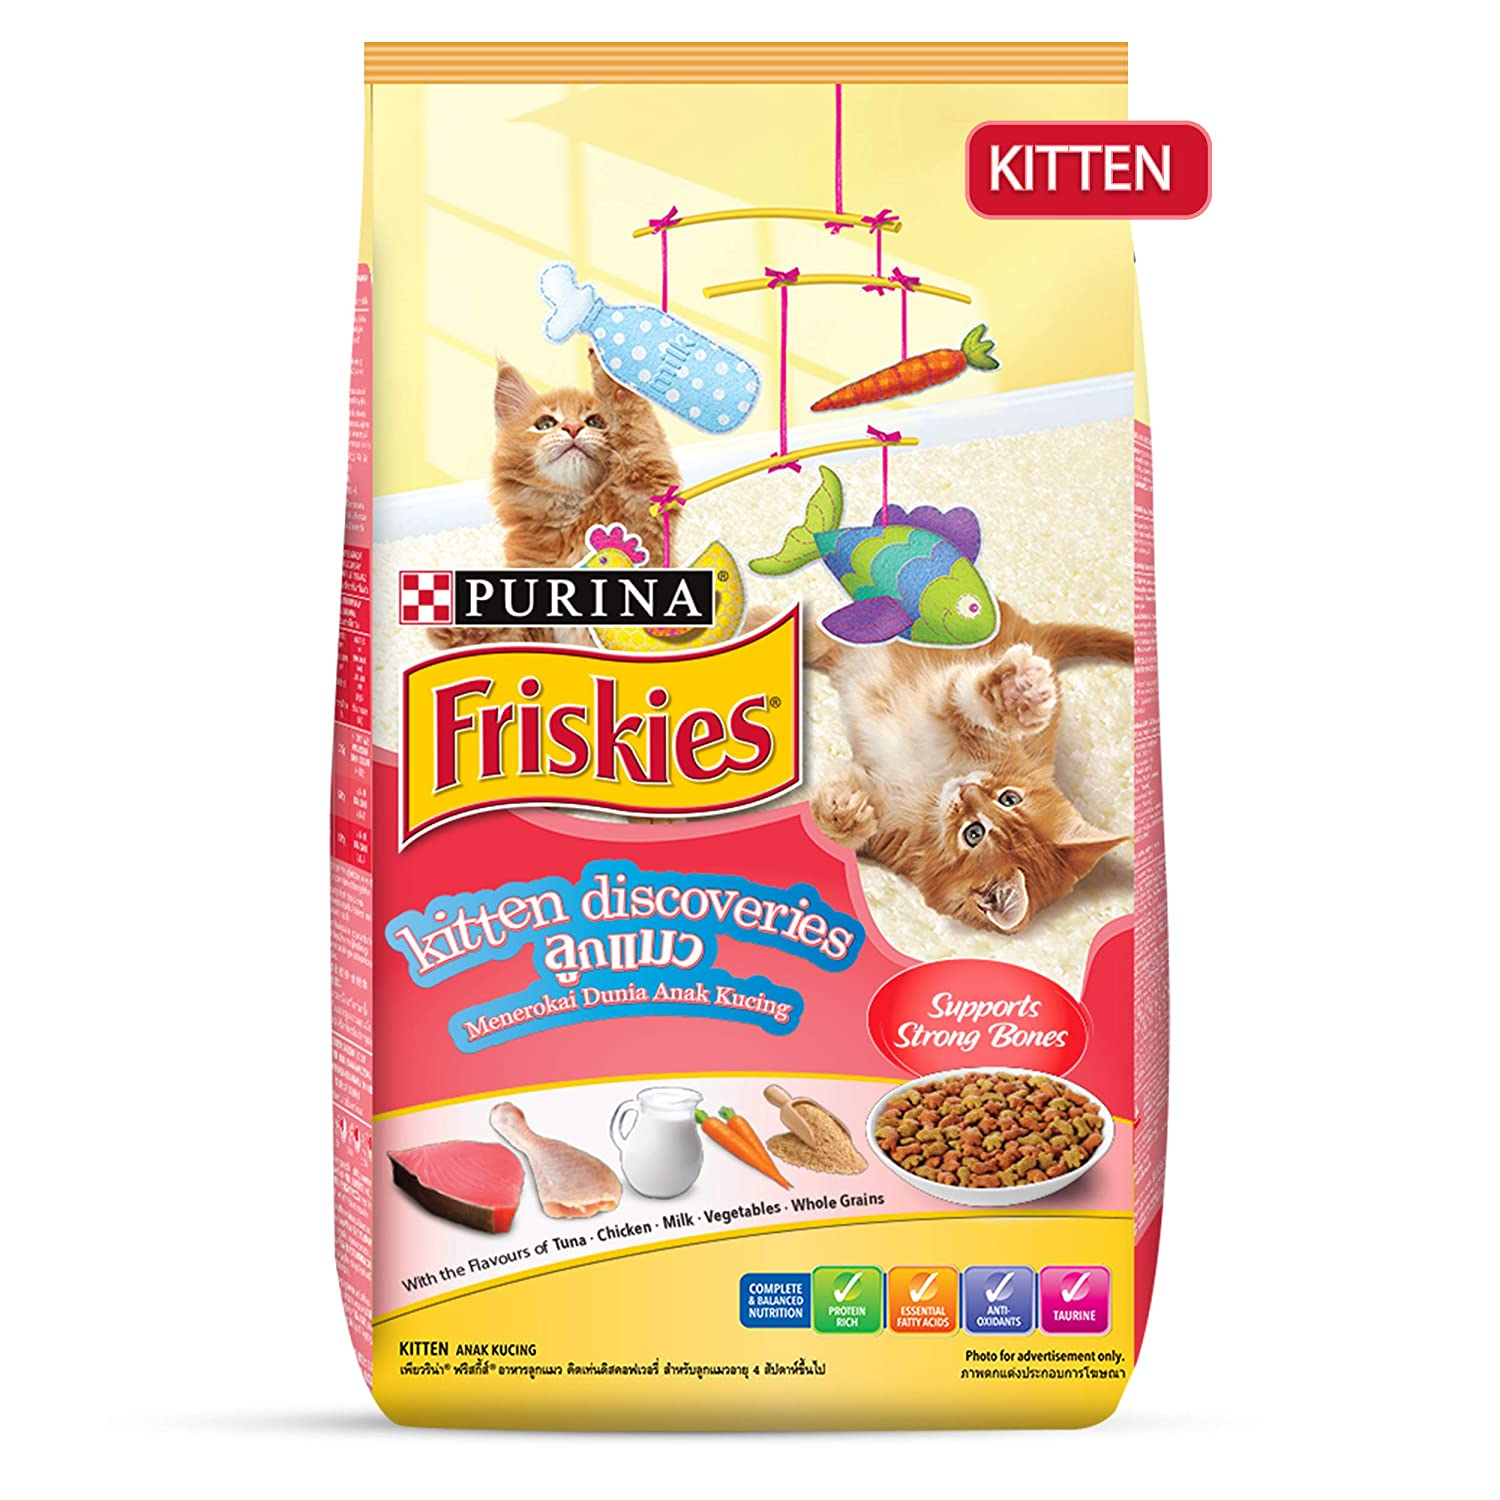 Buy Purina Friskies Purina Friskies Kitten Discoveries Baby Cat Food Tuna Chicken Milk Vegetables Whole Grain Flavours 1 1kg Pack 1 1 Kg Online At Low Prices In India Amazon In